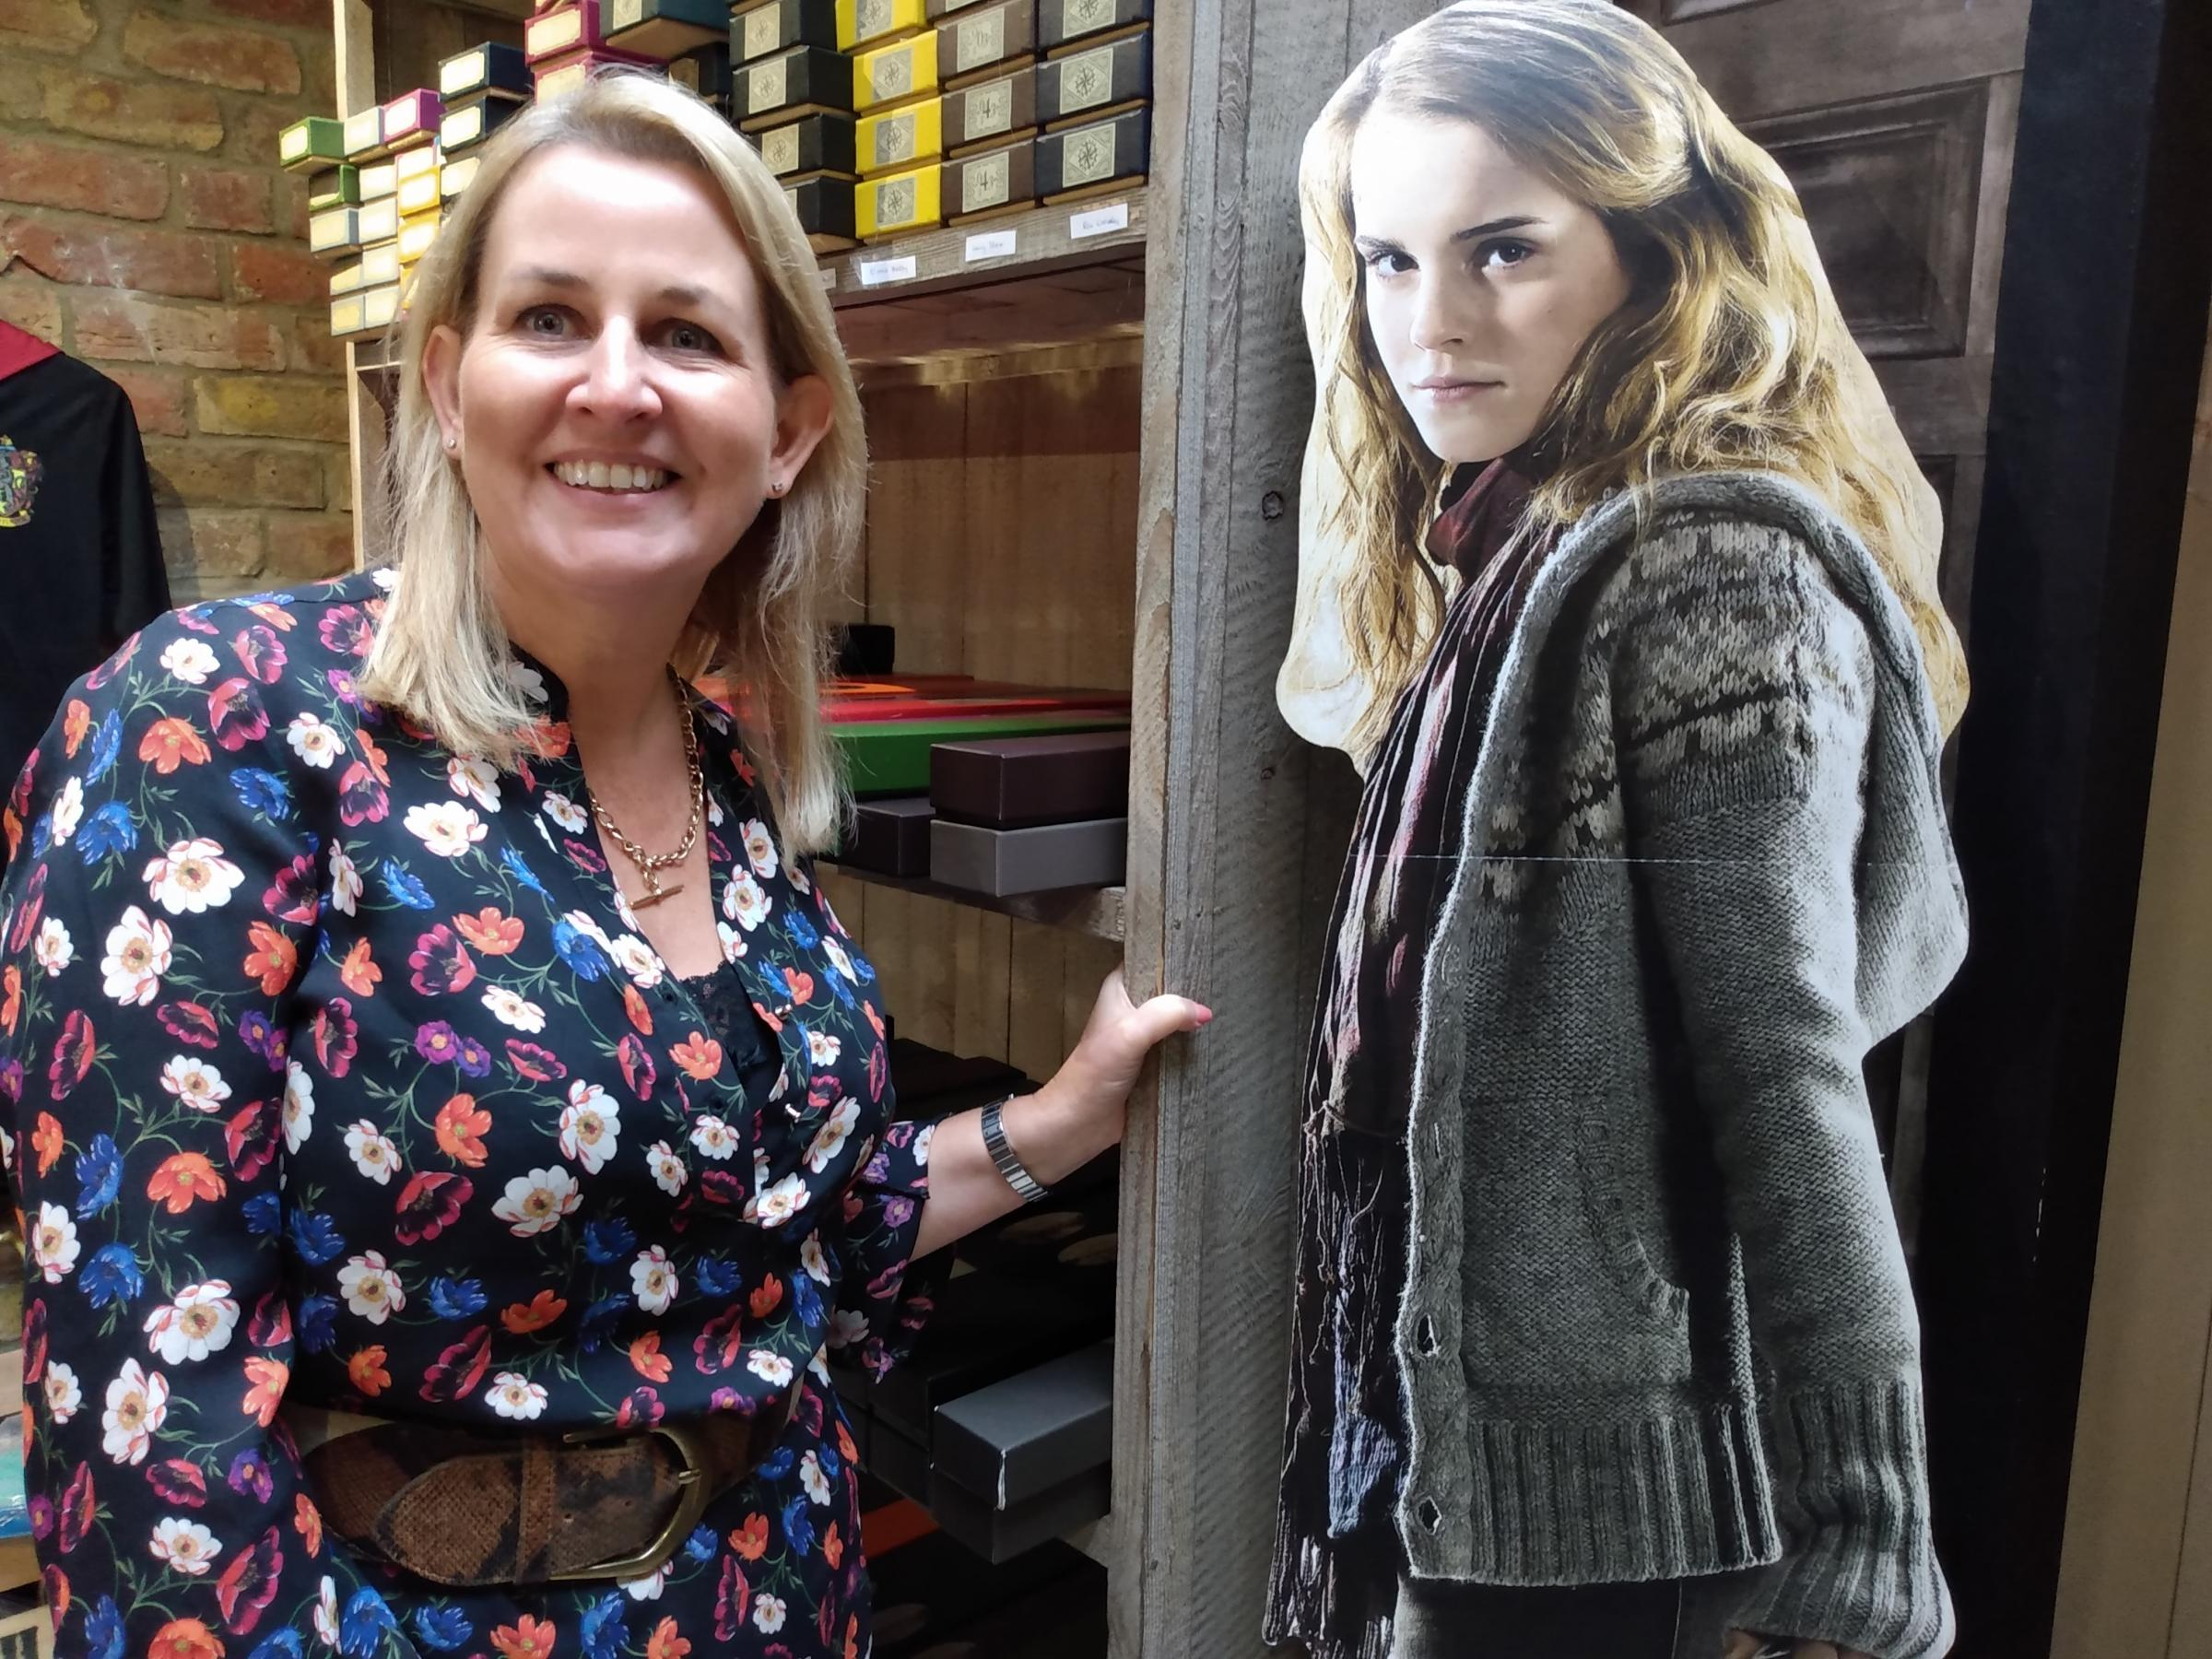 New Harry Potter shop could spell trouble for Diagon Alley